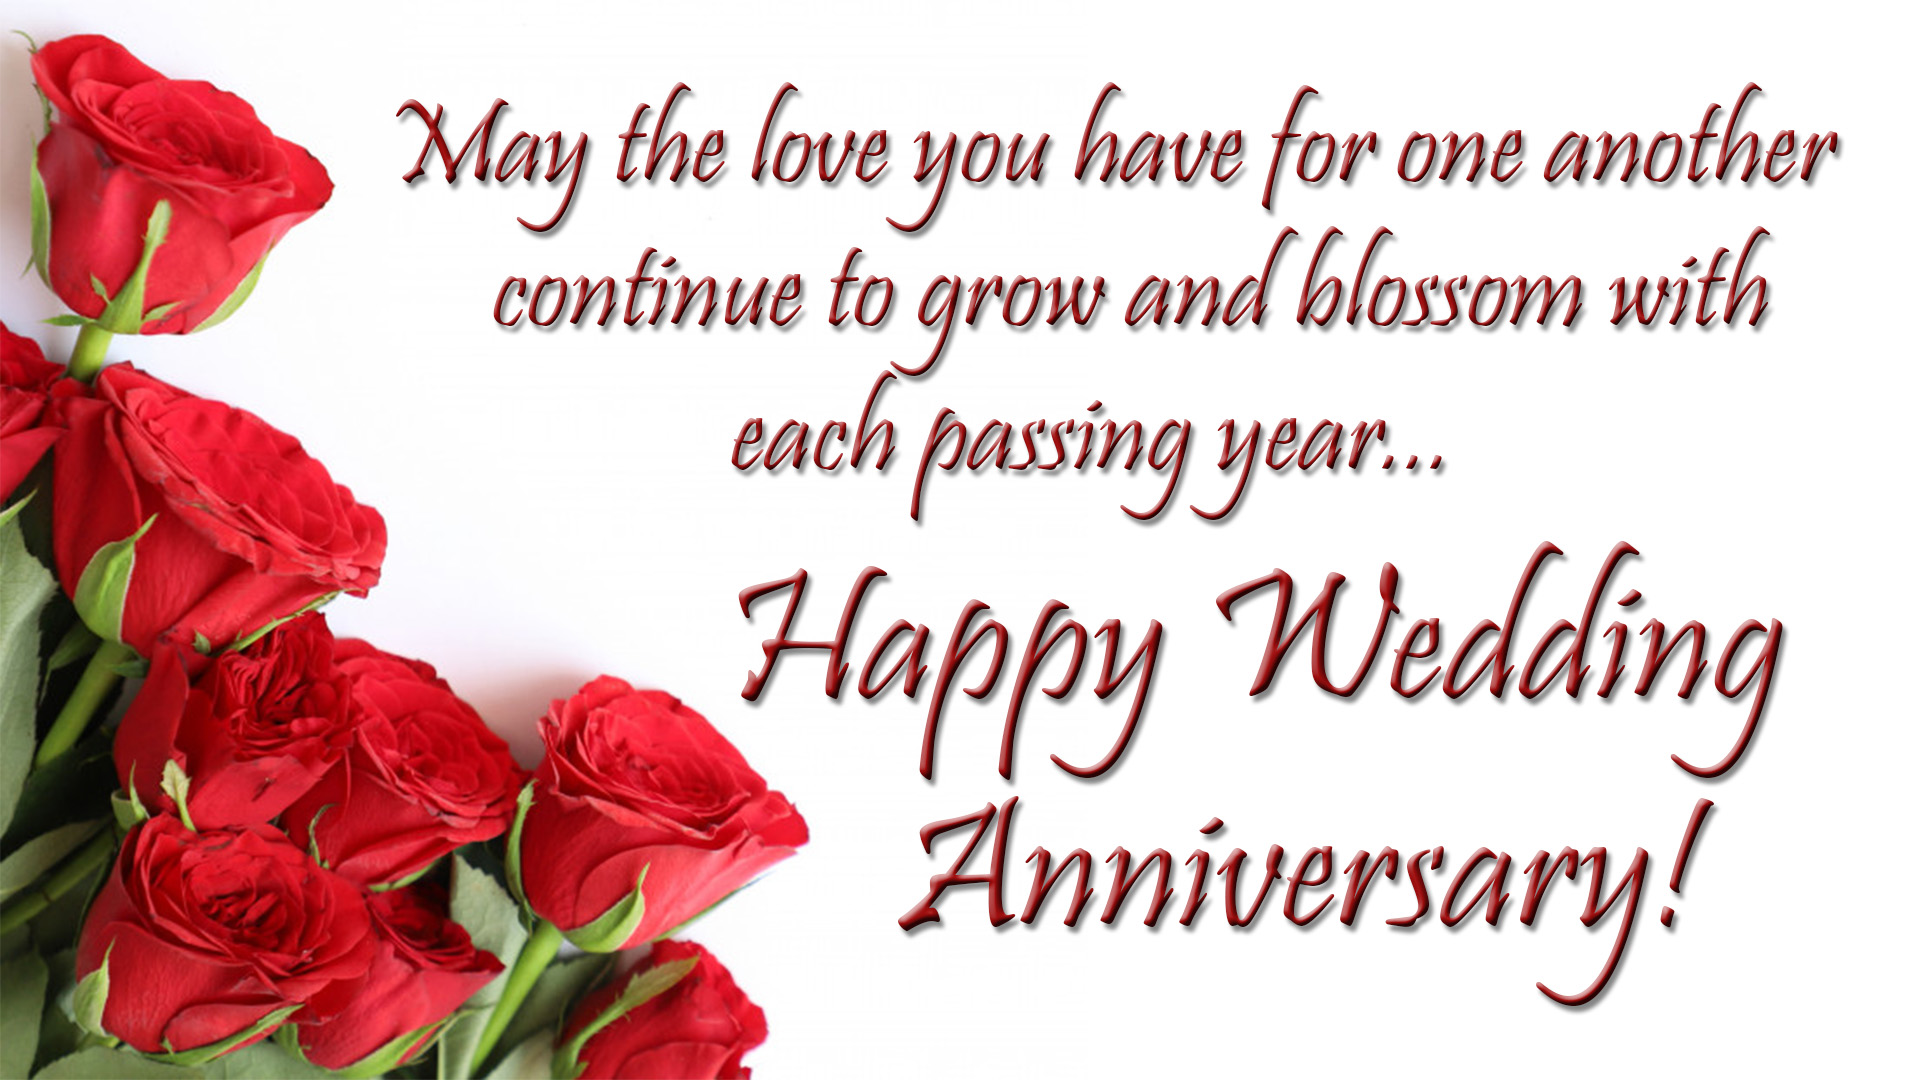 wedding anniversary wishes  greeting cards images free